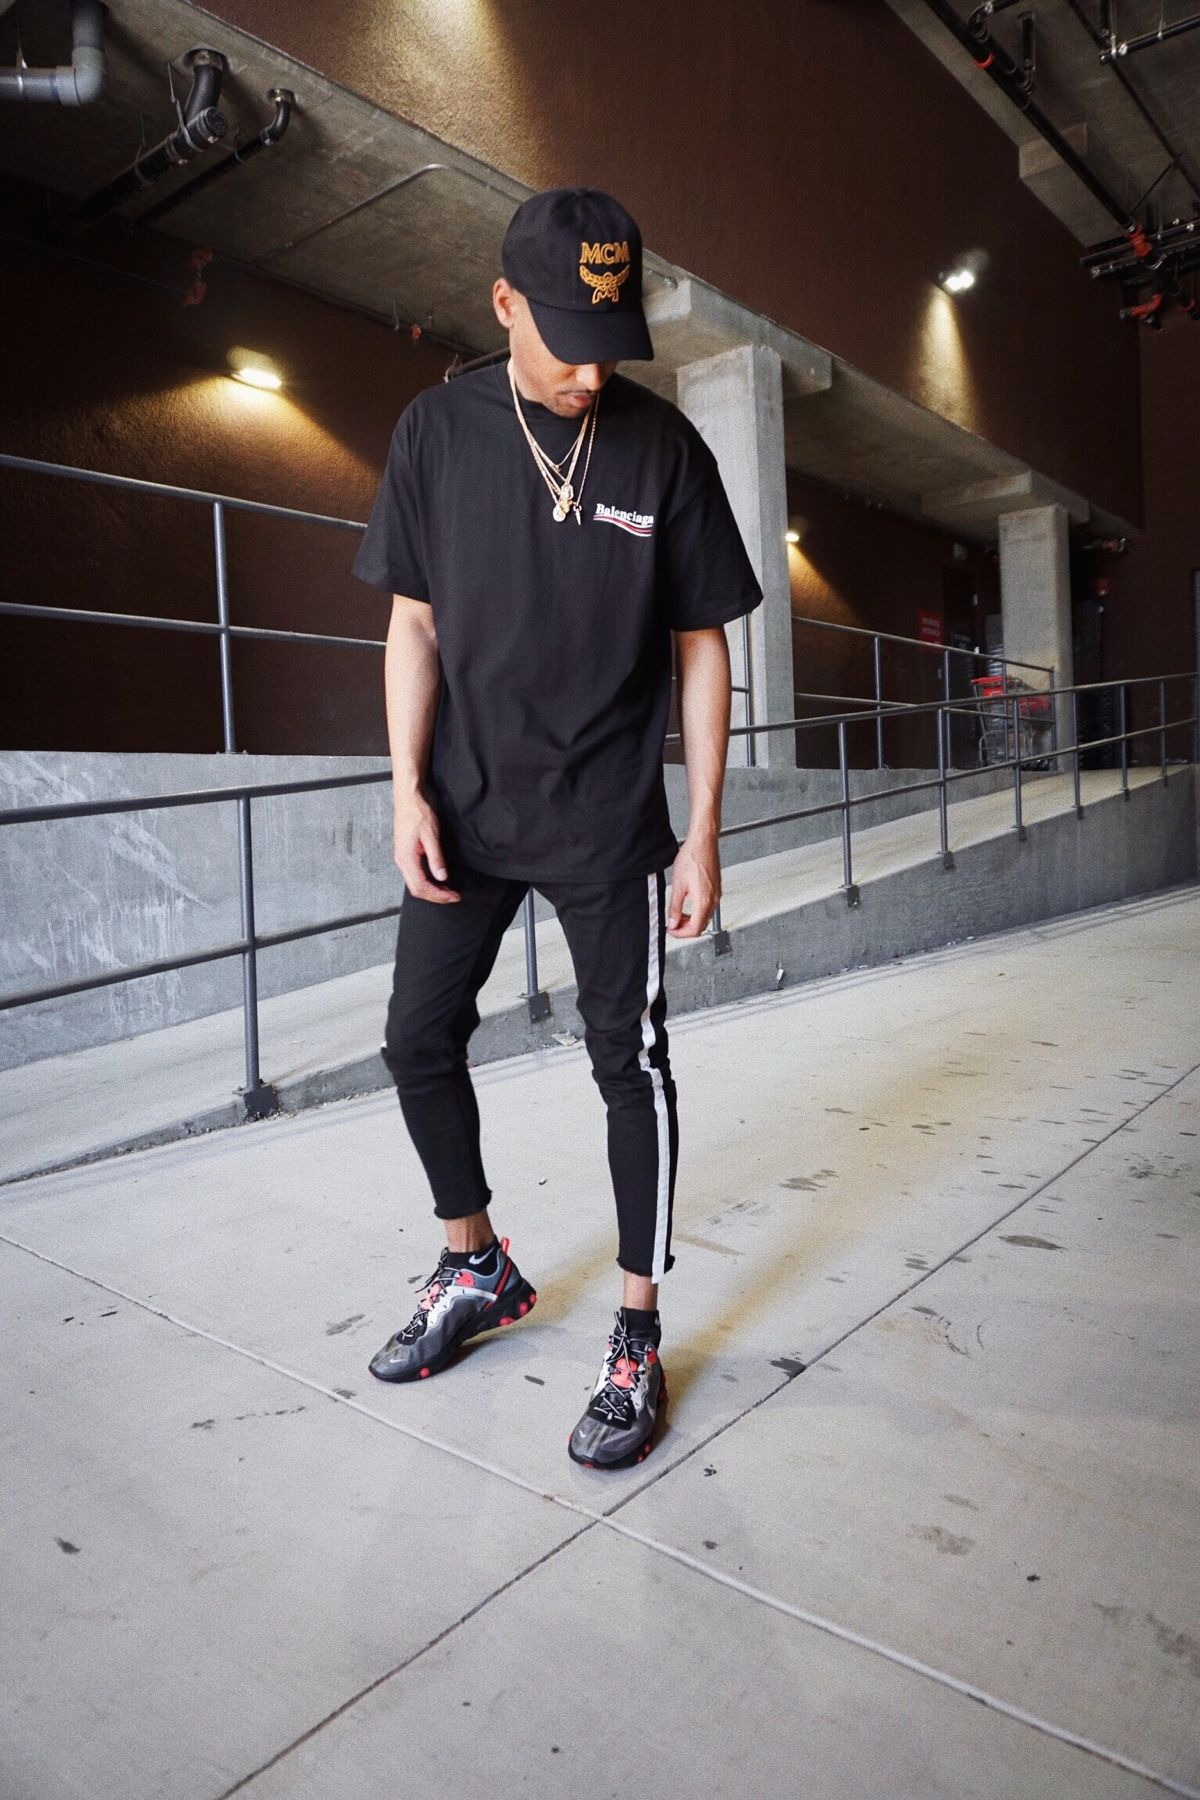 f2834a40 MENS STREETSTYLE OUTFIT BALENCIAGA MEN MCM MEN ALL BLACK OUTFIT MEN HYPEBEAST  OUTFIT FOR MEN @ALLENROBATEAU